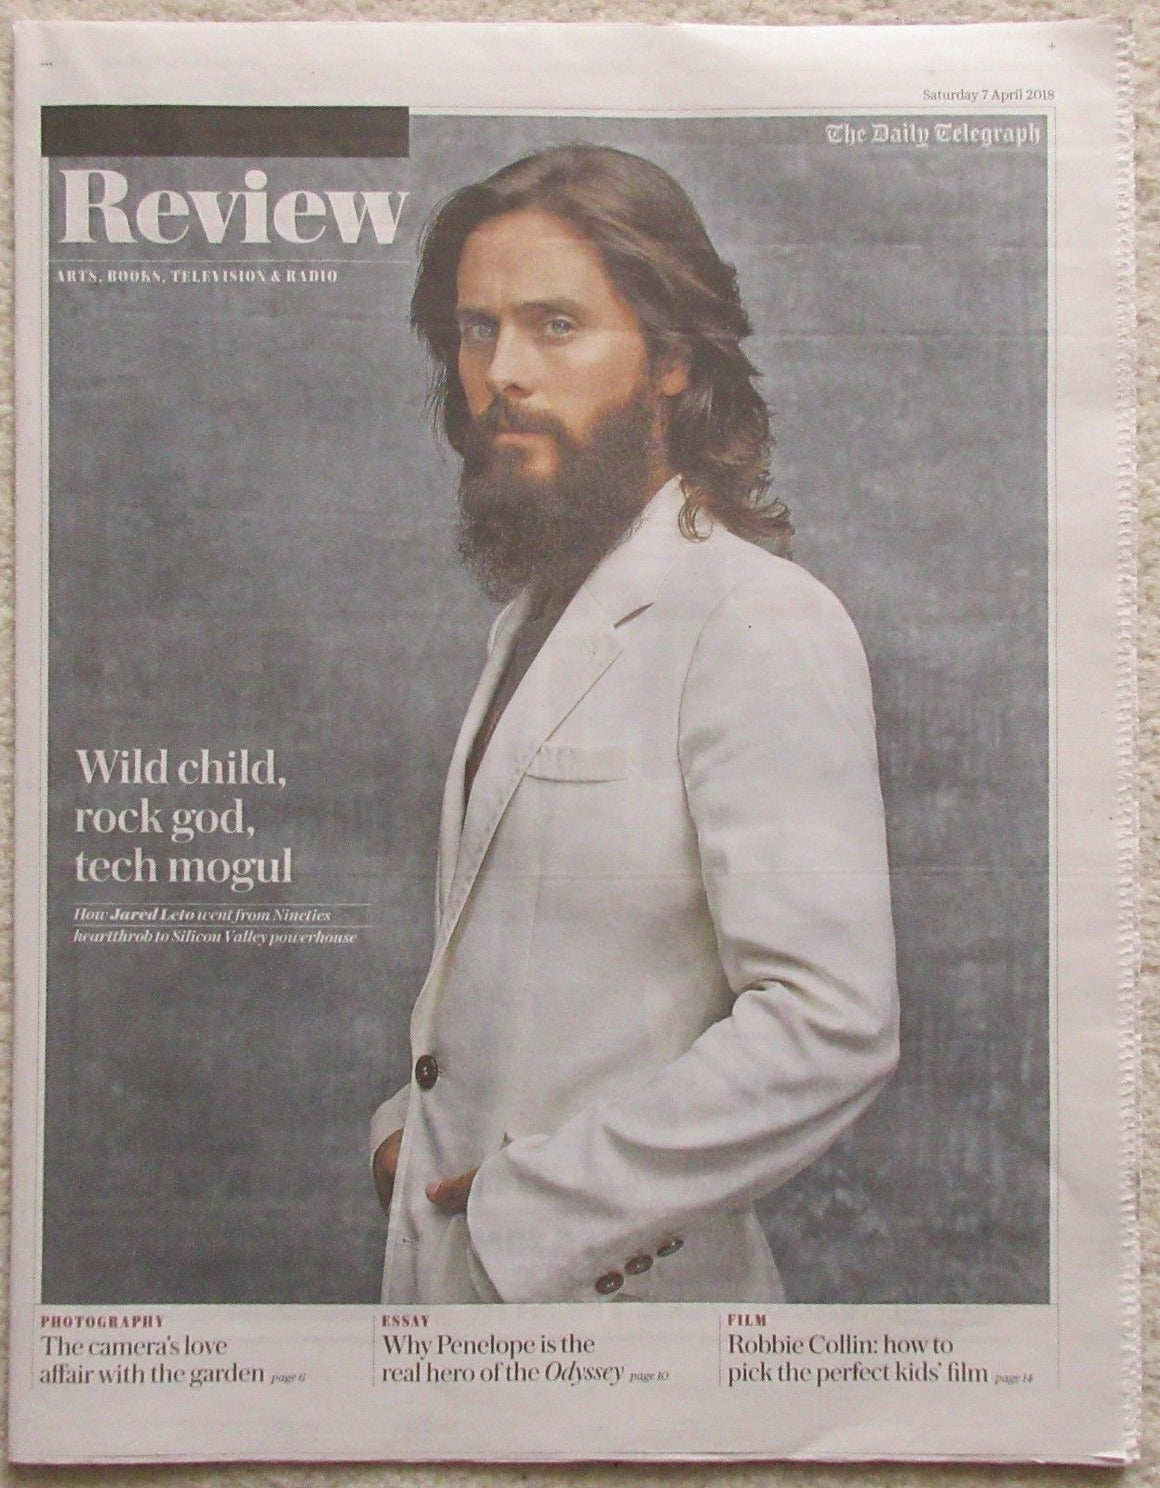 30 Seconds to Mars - Jared Leto - UK Daily Telegraph Review – 7 April 2018